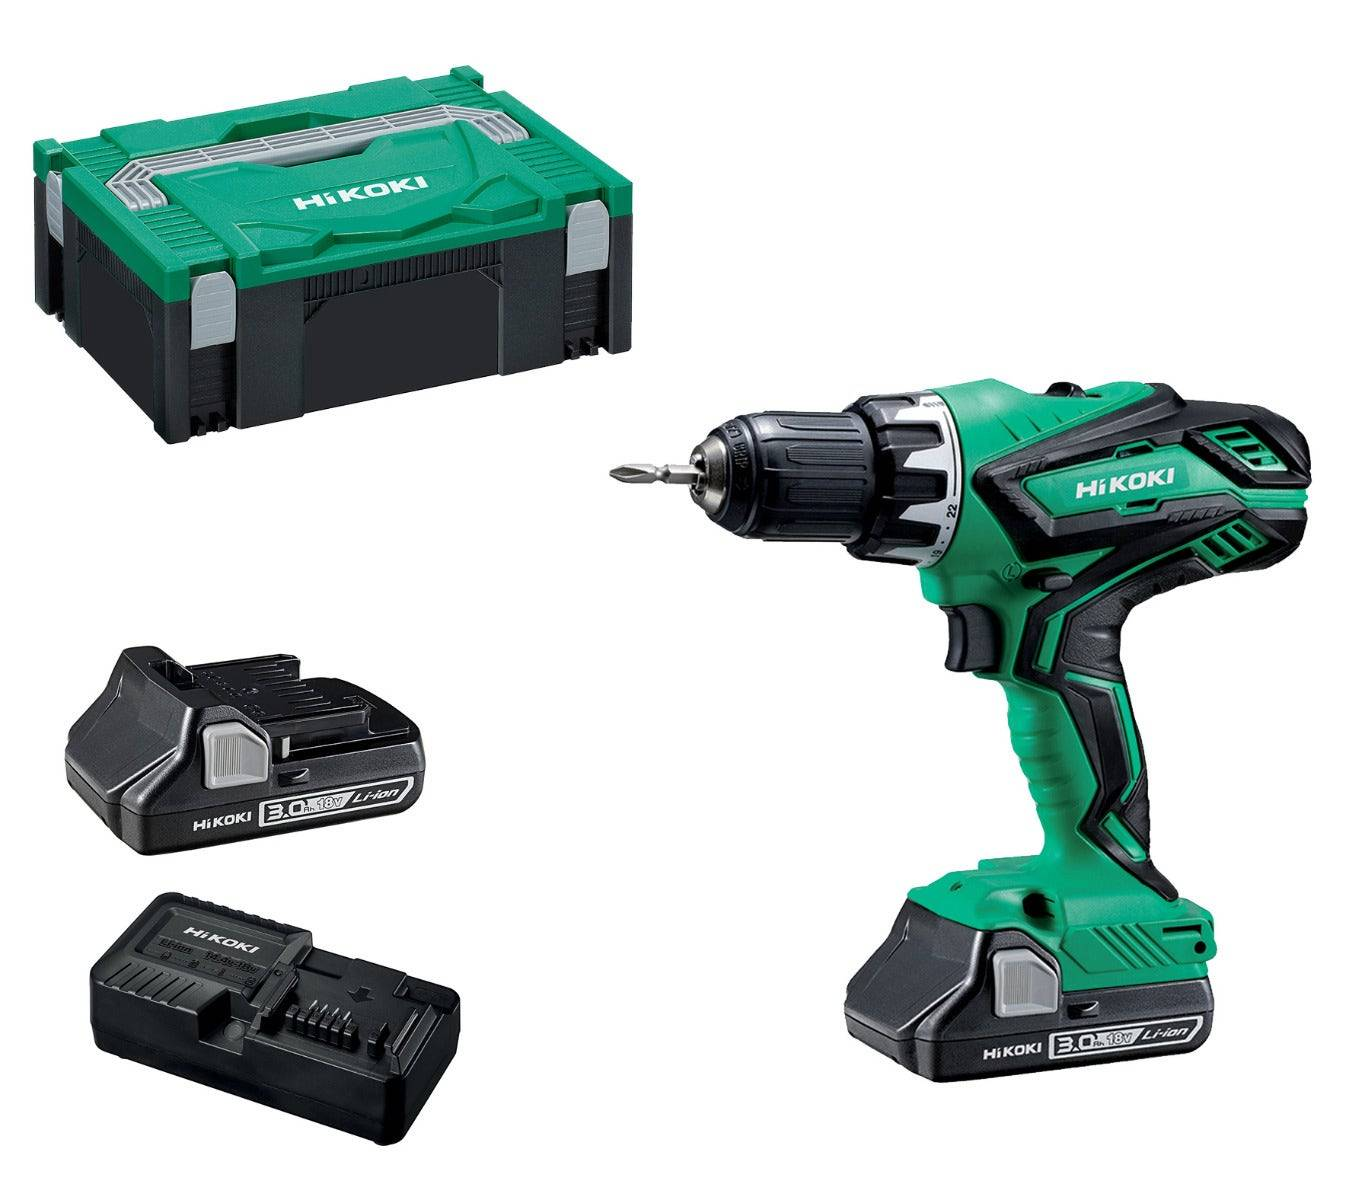 Hikoki Perceuse-visseuse sans fil 18V Ø13mm + 2 batteries Li-Ion 3Ah + chargeur + coffret Hit Case